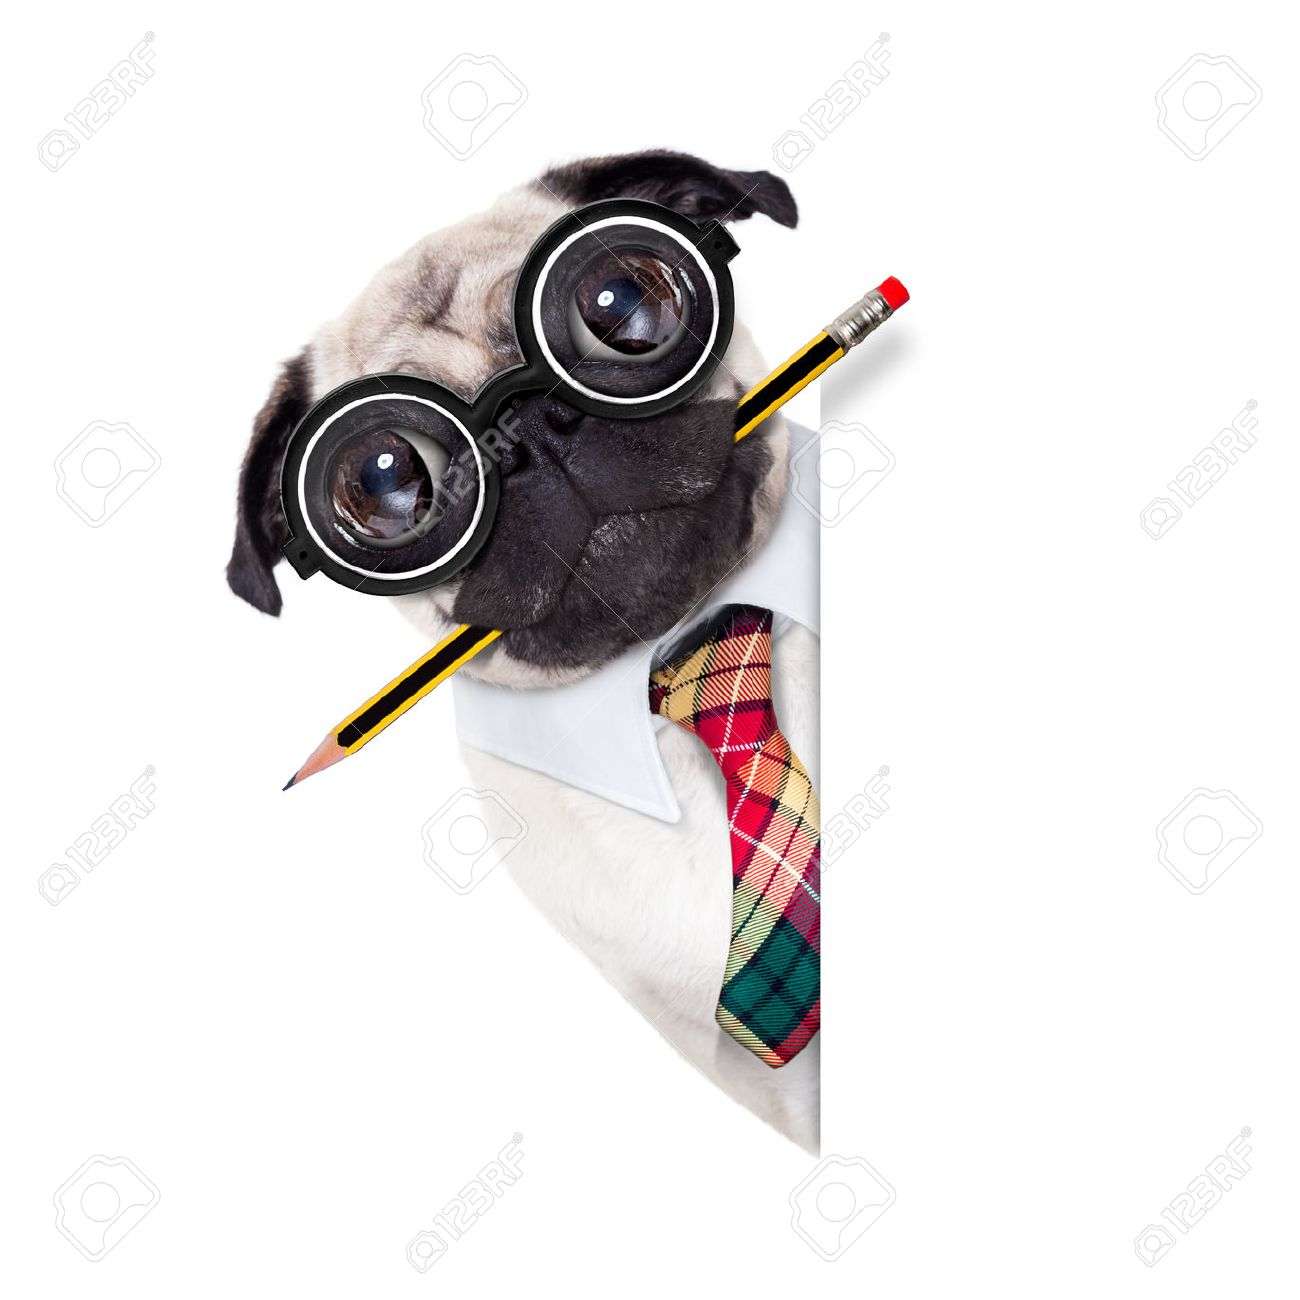 dumb crazy pug dog with nerd glasses as an office business worker with pencil in mouth ,behind empty blank banner or placard,  isolated on white background Stock Photo - 49248122